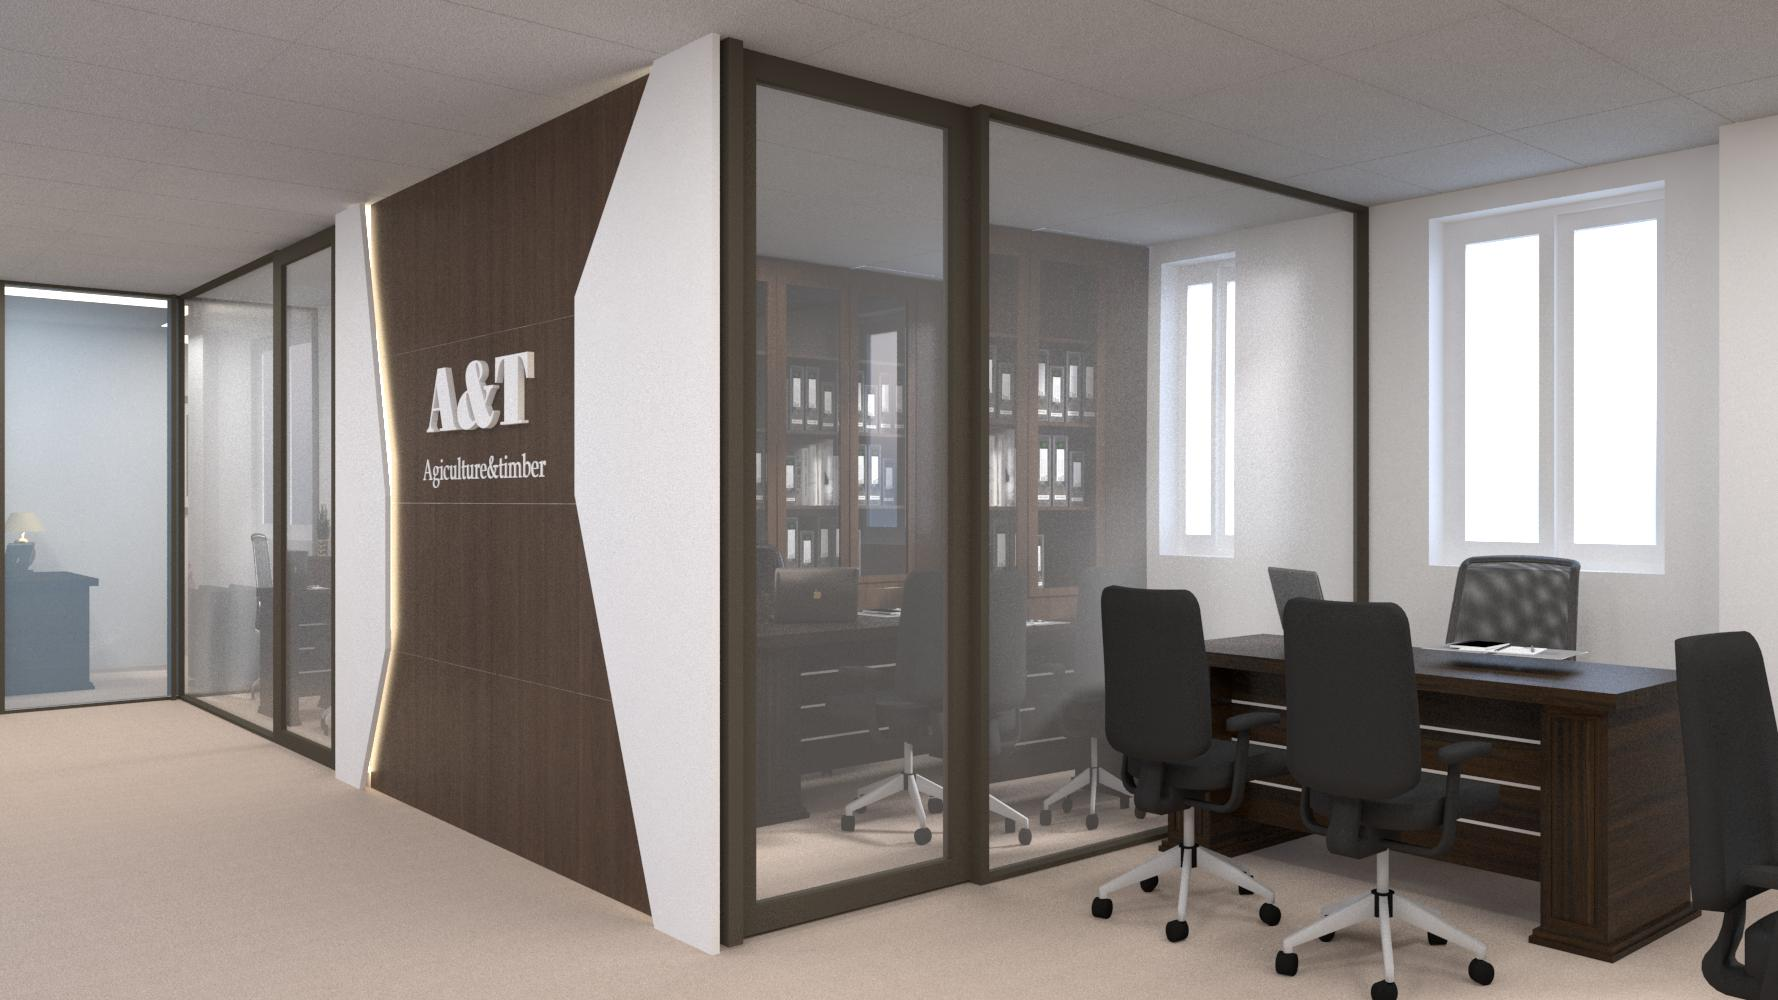 A&T JSC expands the office and orientate businesses in the new period